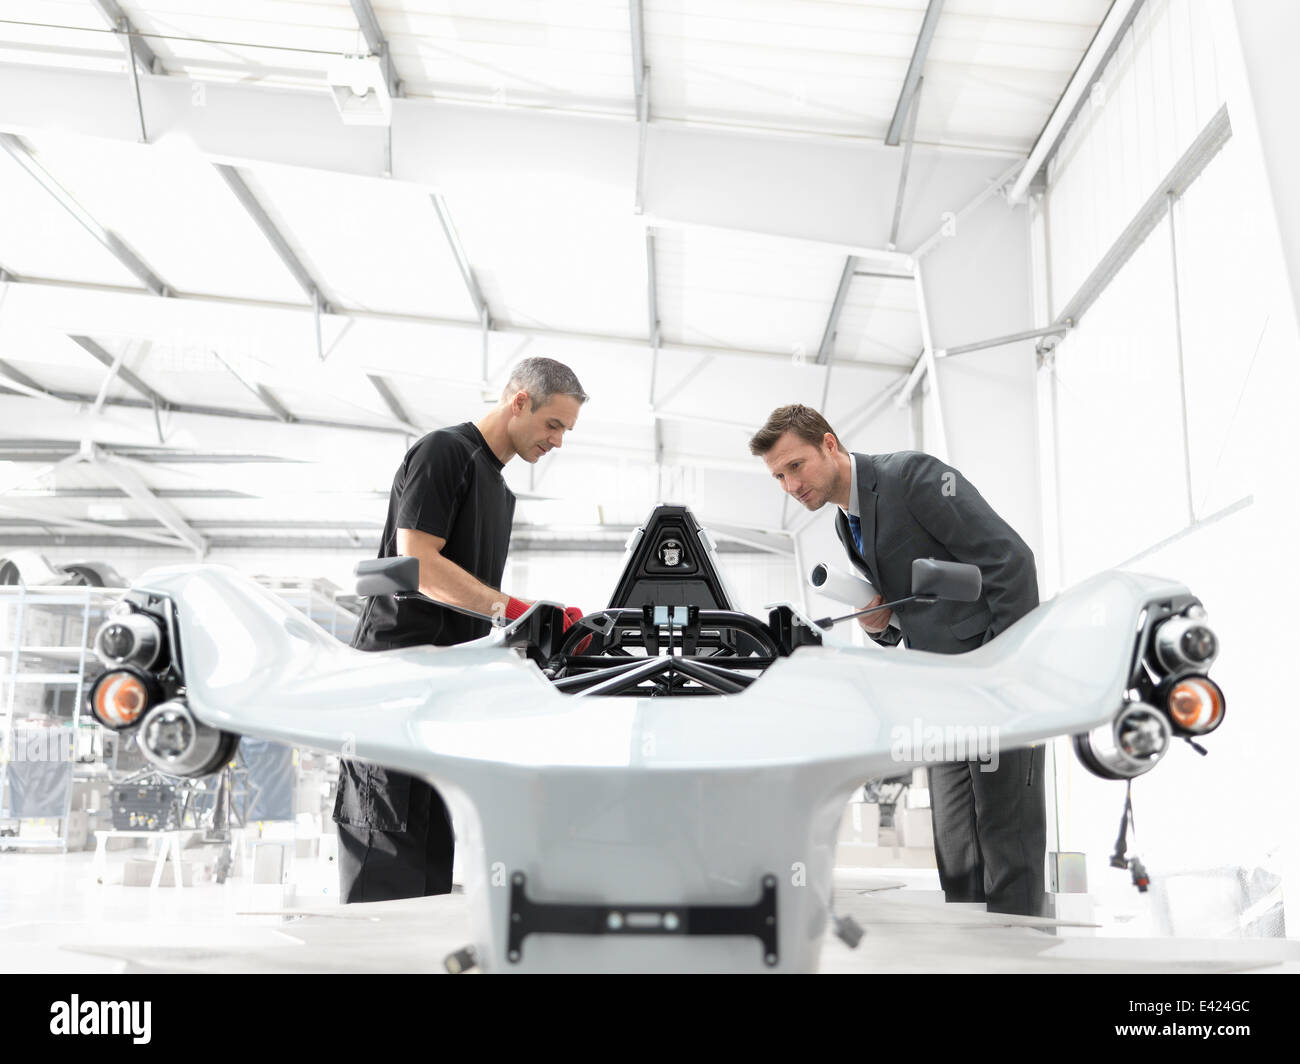 Engineer and automotive designer inspecting part-built supercar in car factory - Stock Image